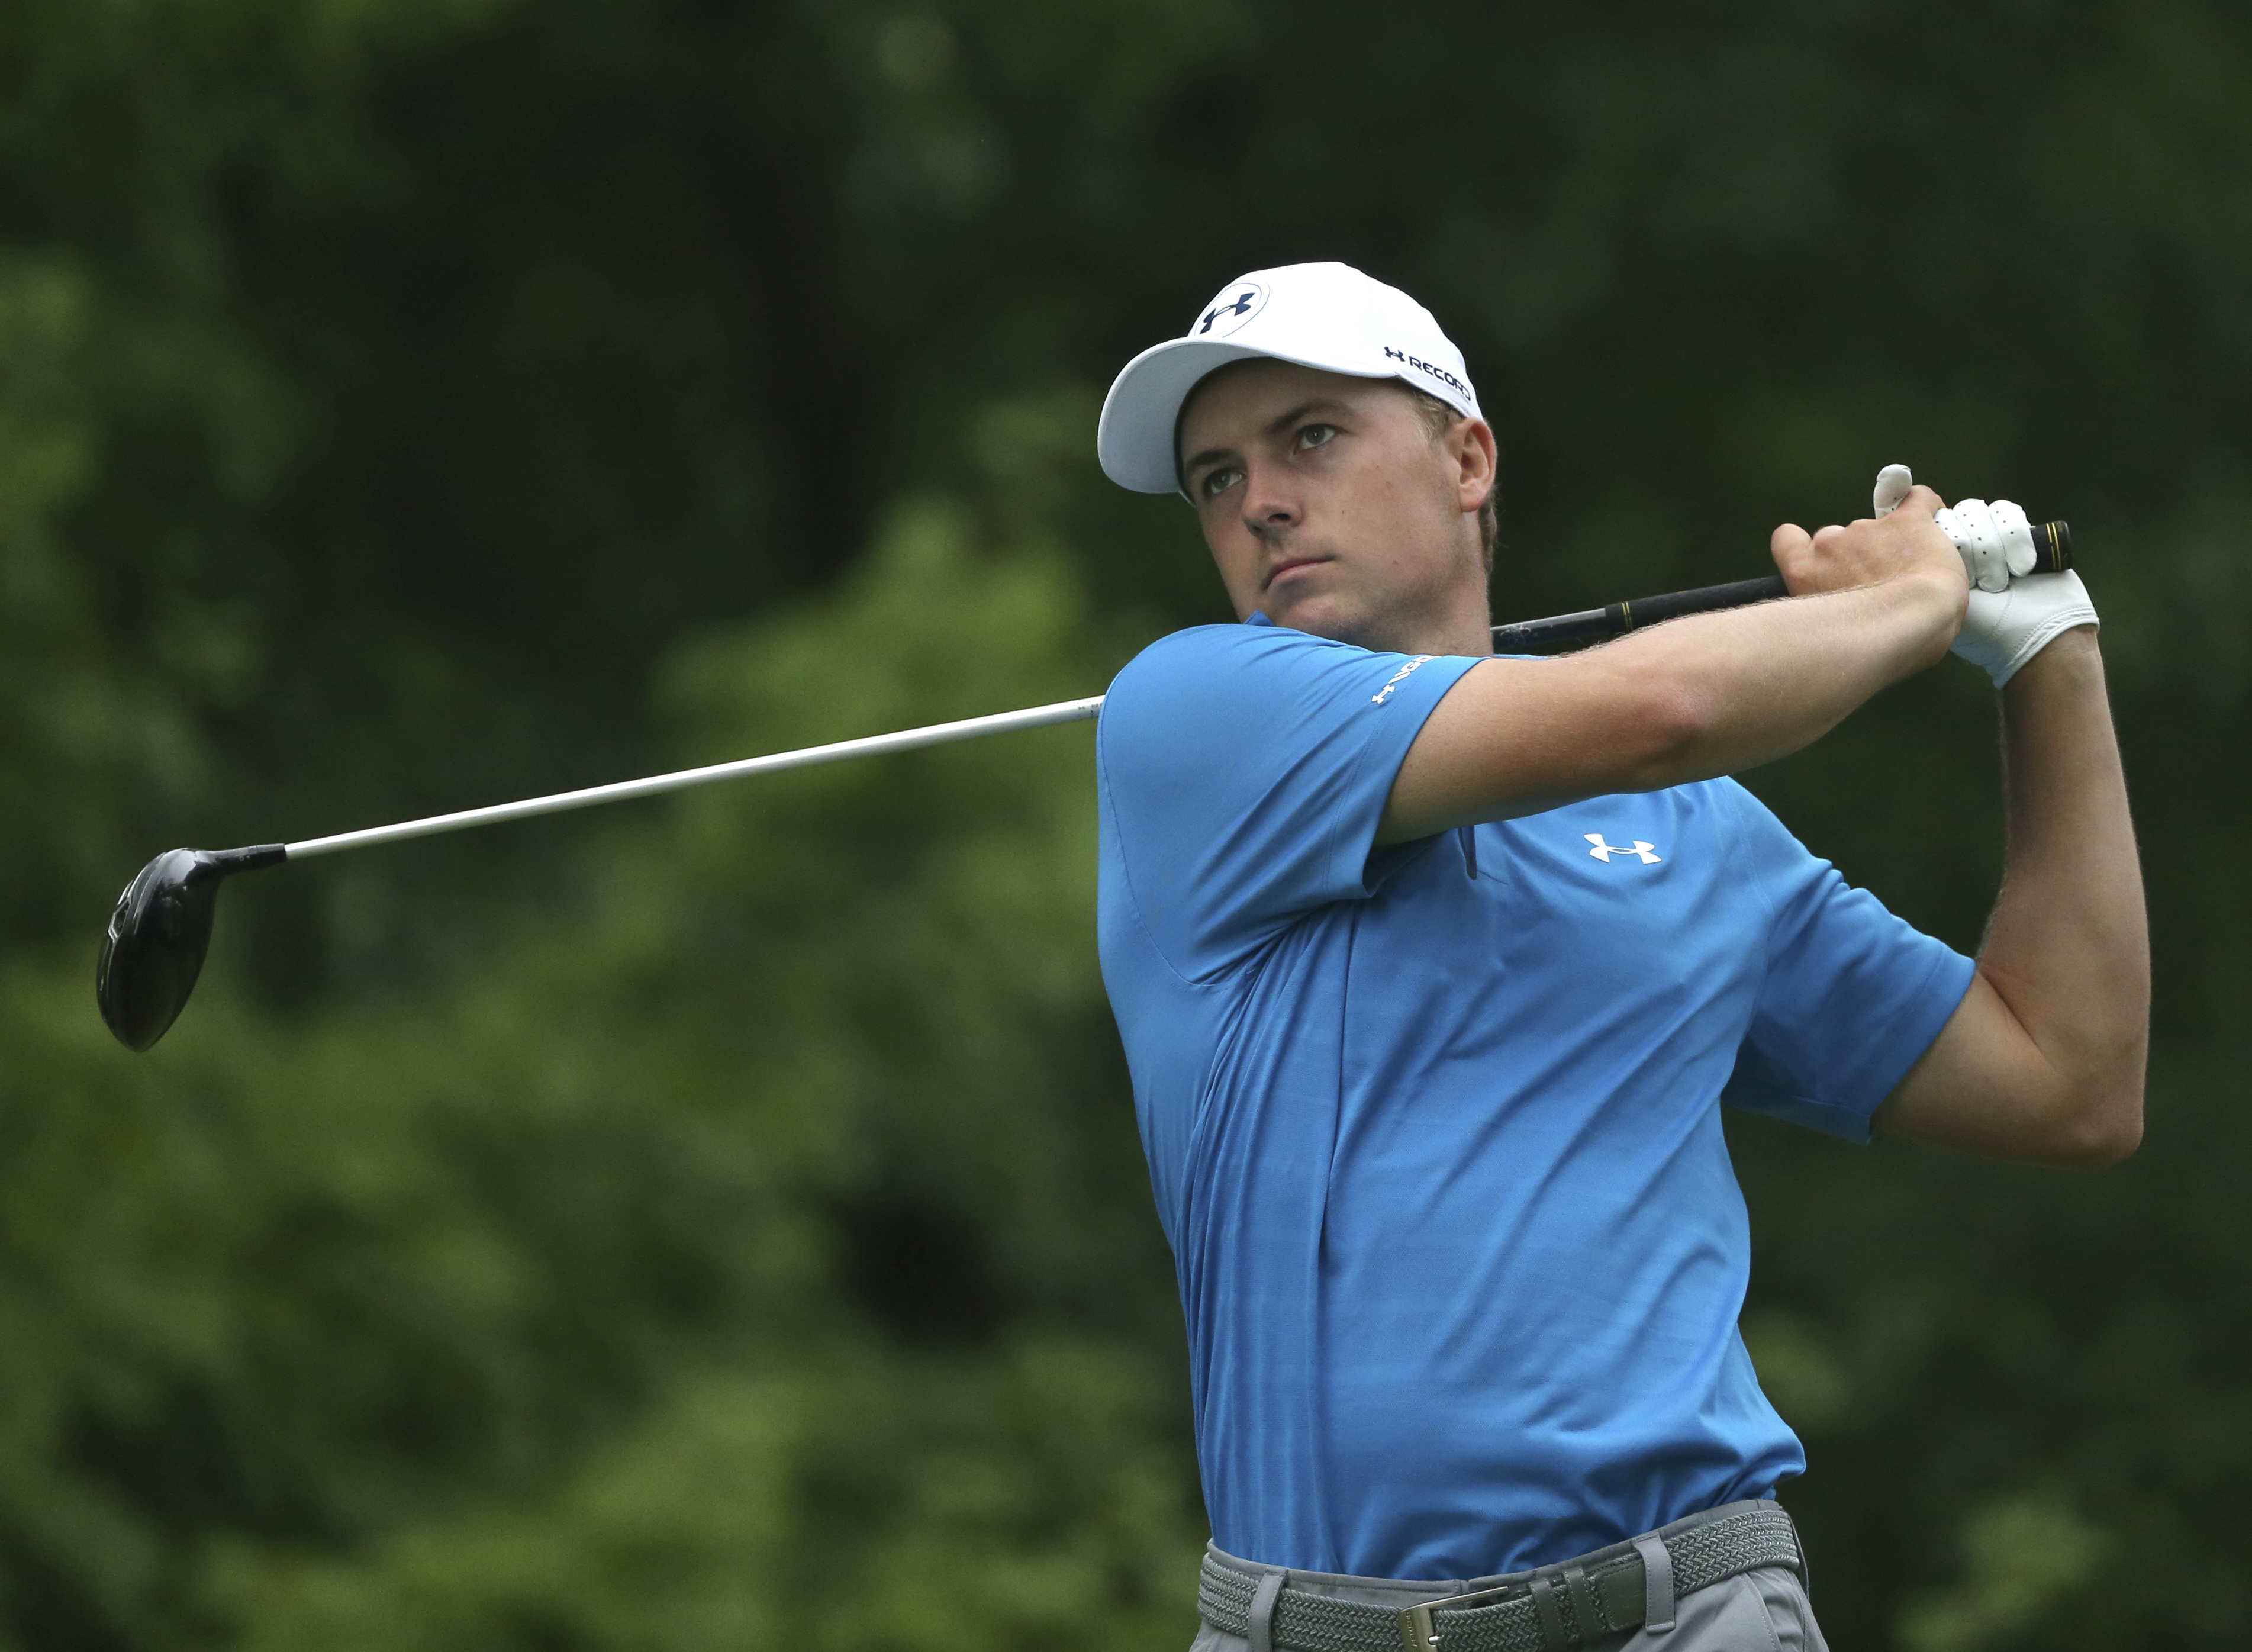 Jordan Spieth watches his tee shot on the third hole during the third round of the PGA Championship golf tournament at Baltusrol Golf Club in Springfield, N.J., Sunday, July 31, 2016. (AP Photo/Seth Wenig)